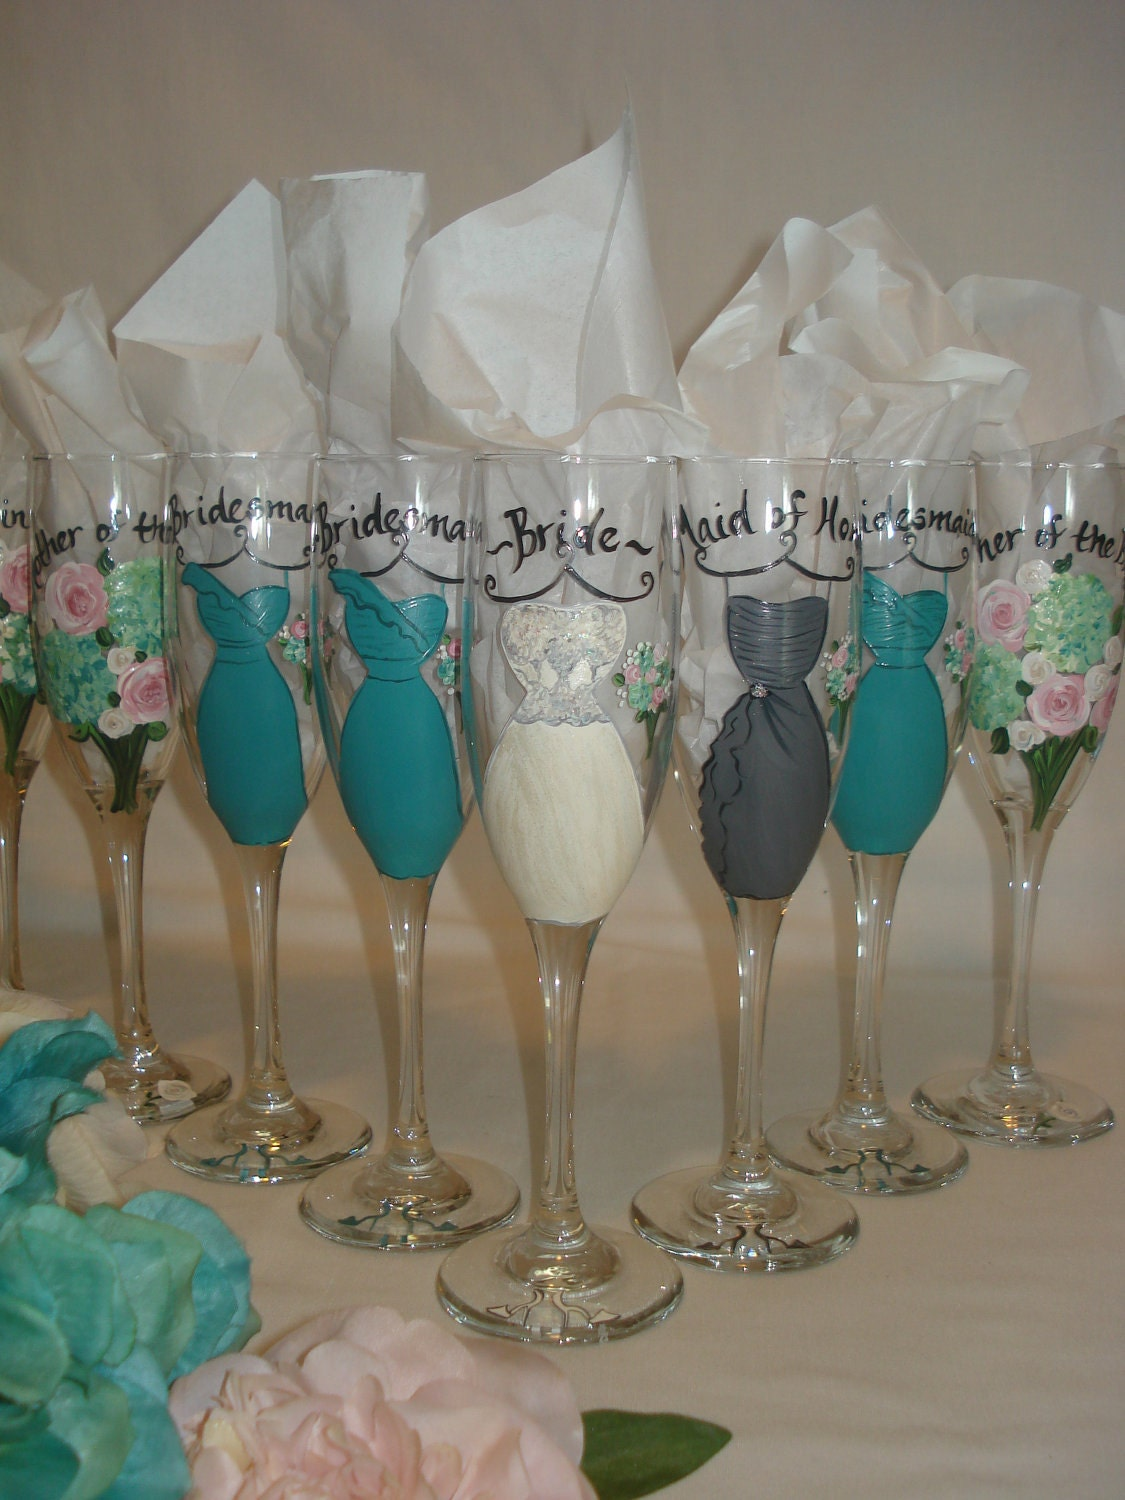 Unique Wedding Gift Ideas For Bridesmaids : Hand Painted Personalized Bridal Party Champagne Glasses